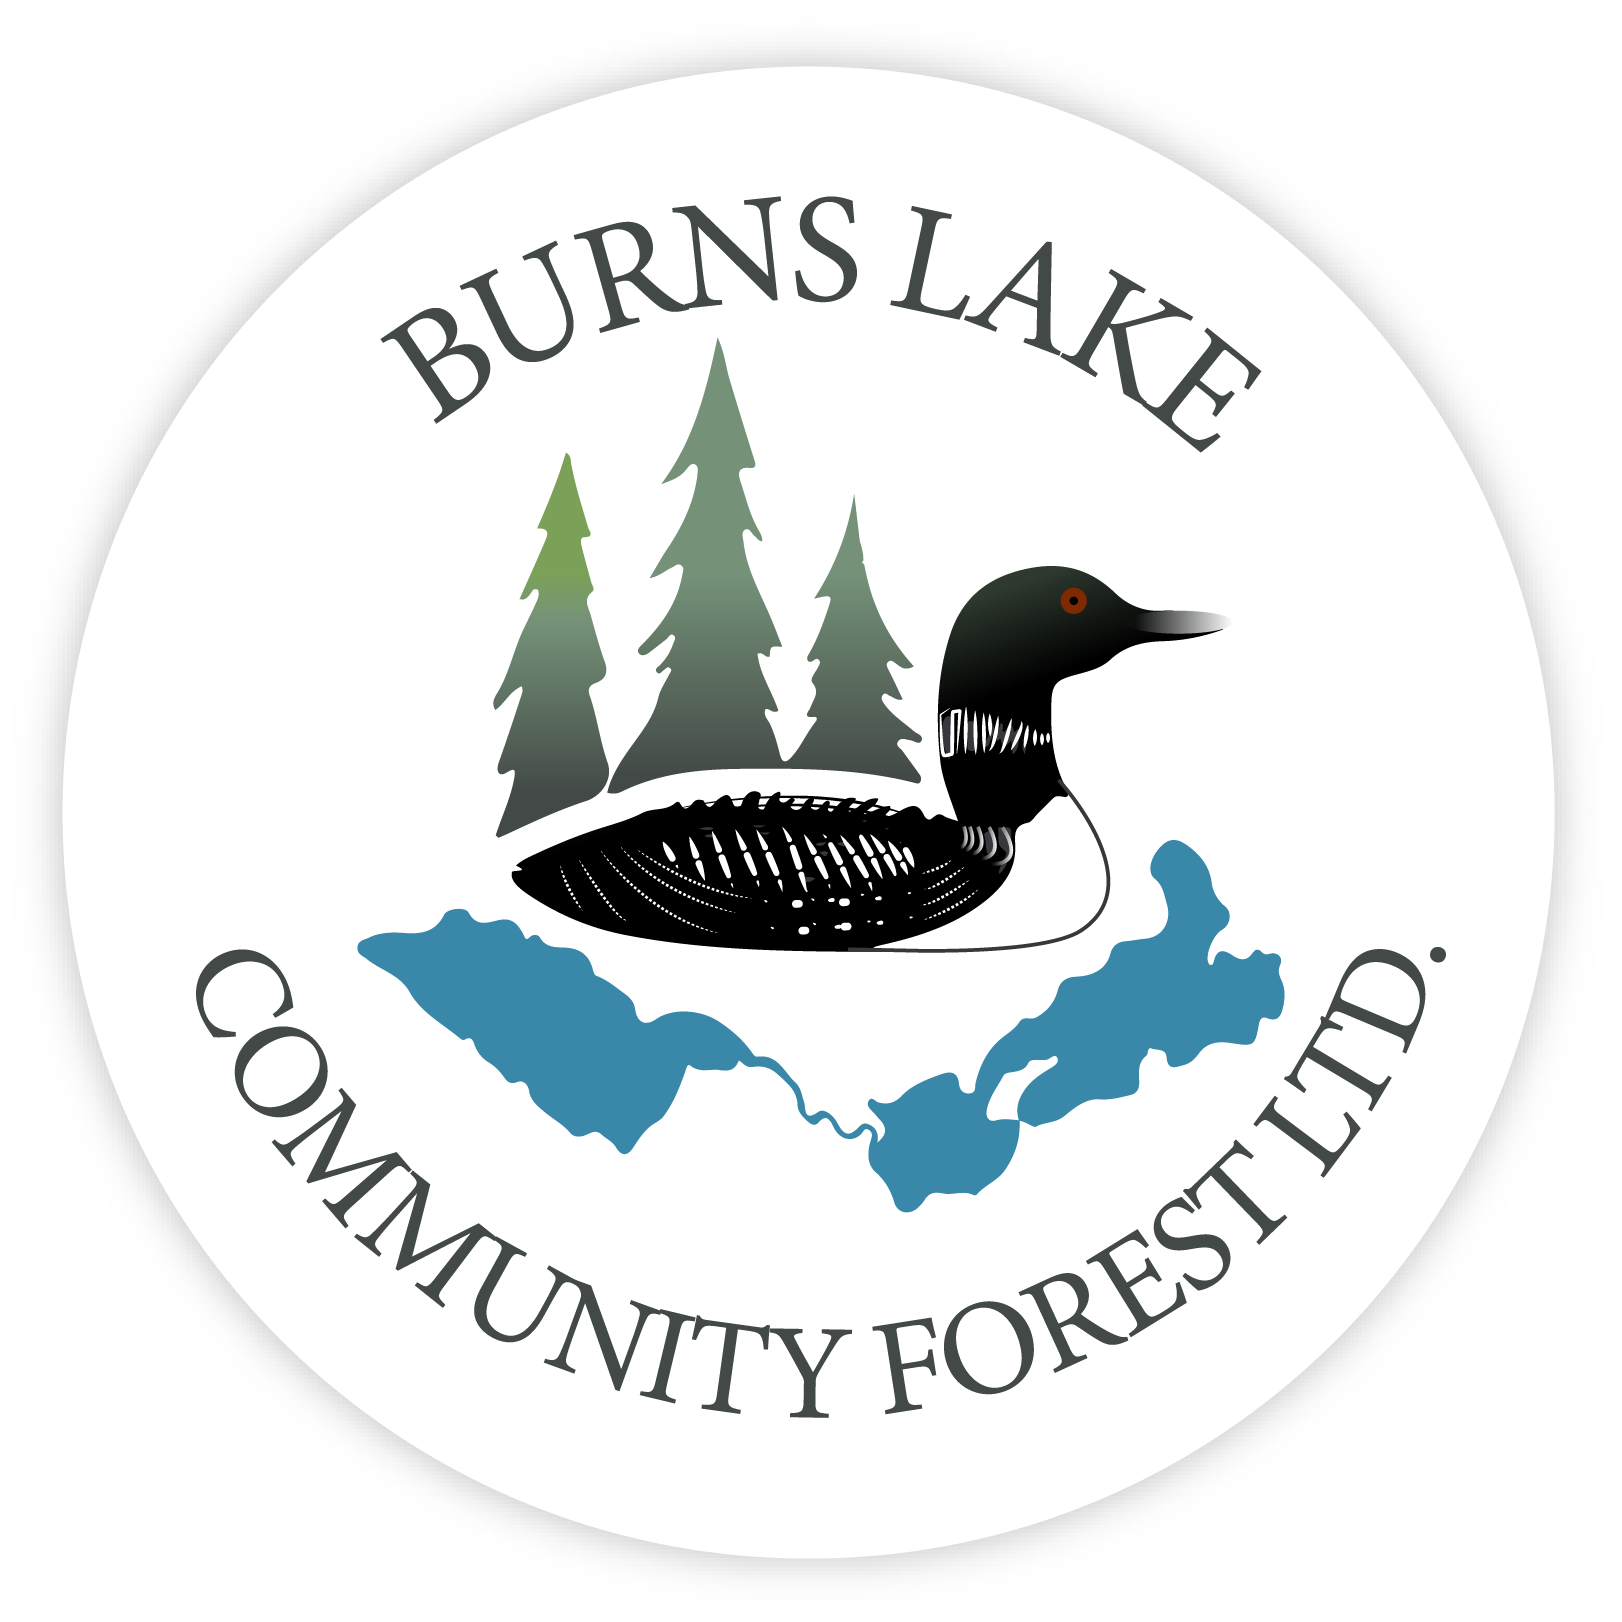 Burns Lake Community Forest Ltd.